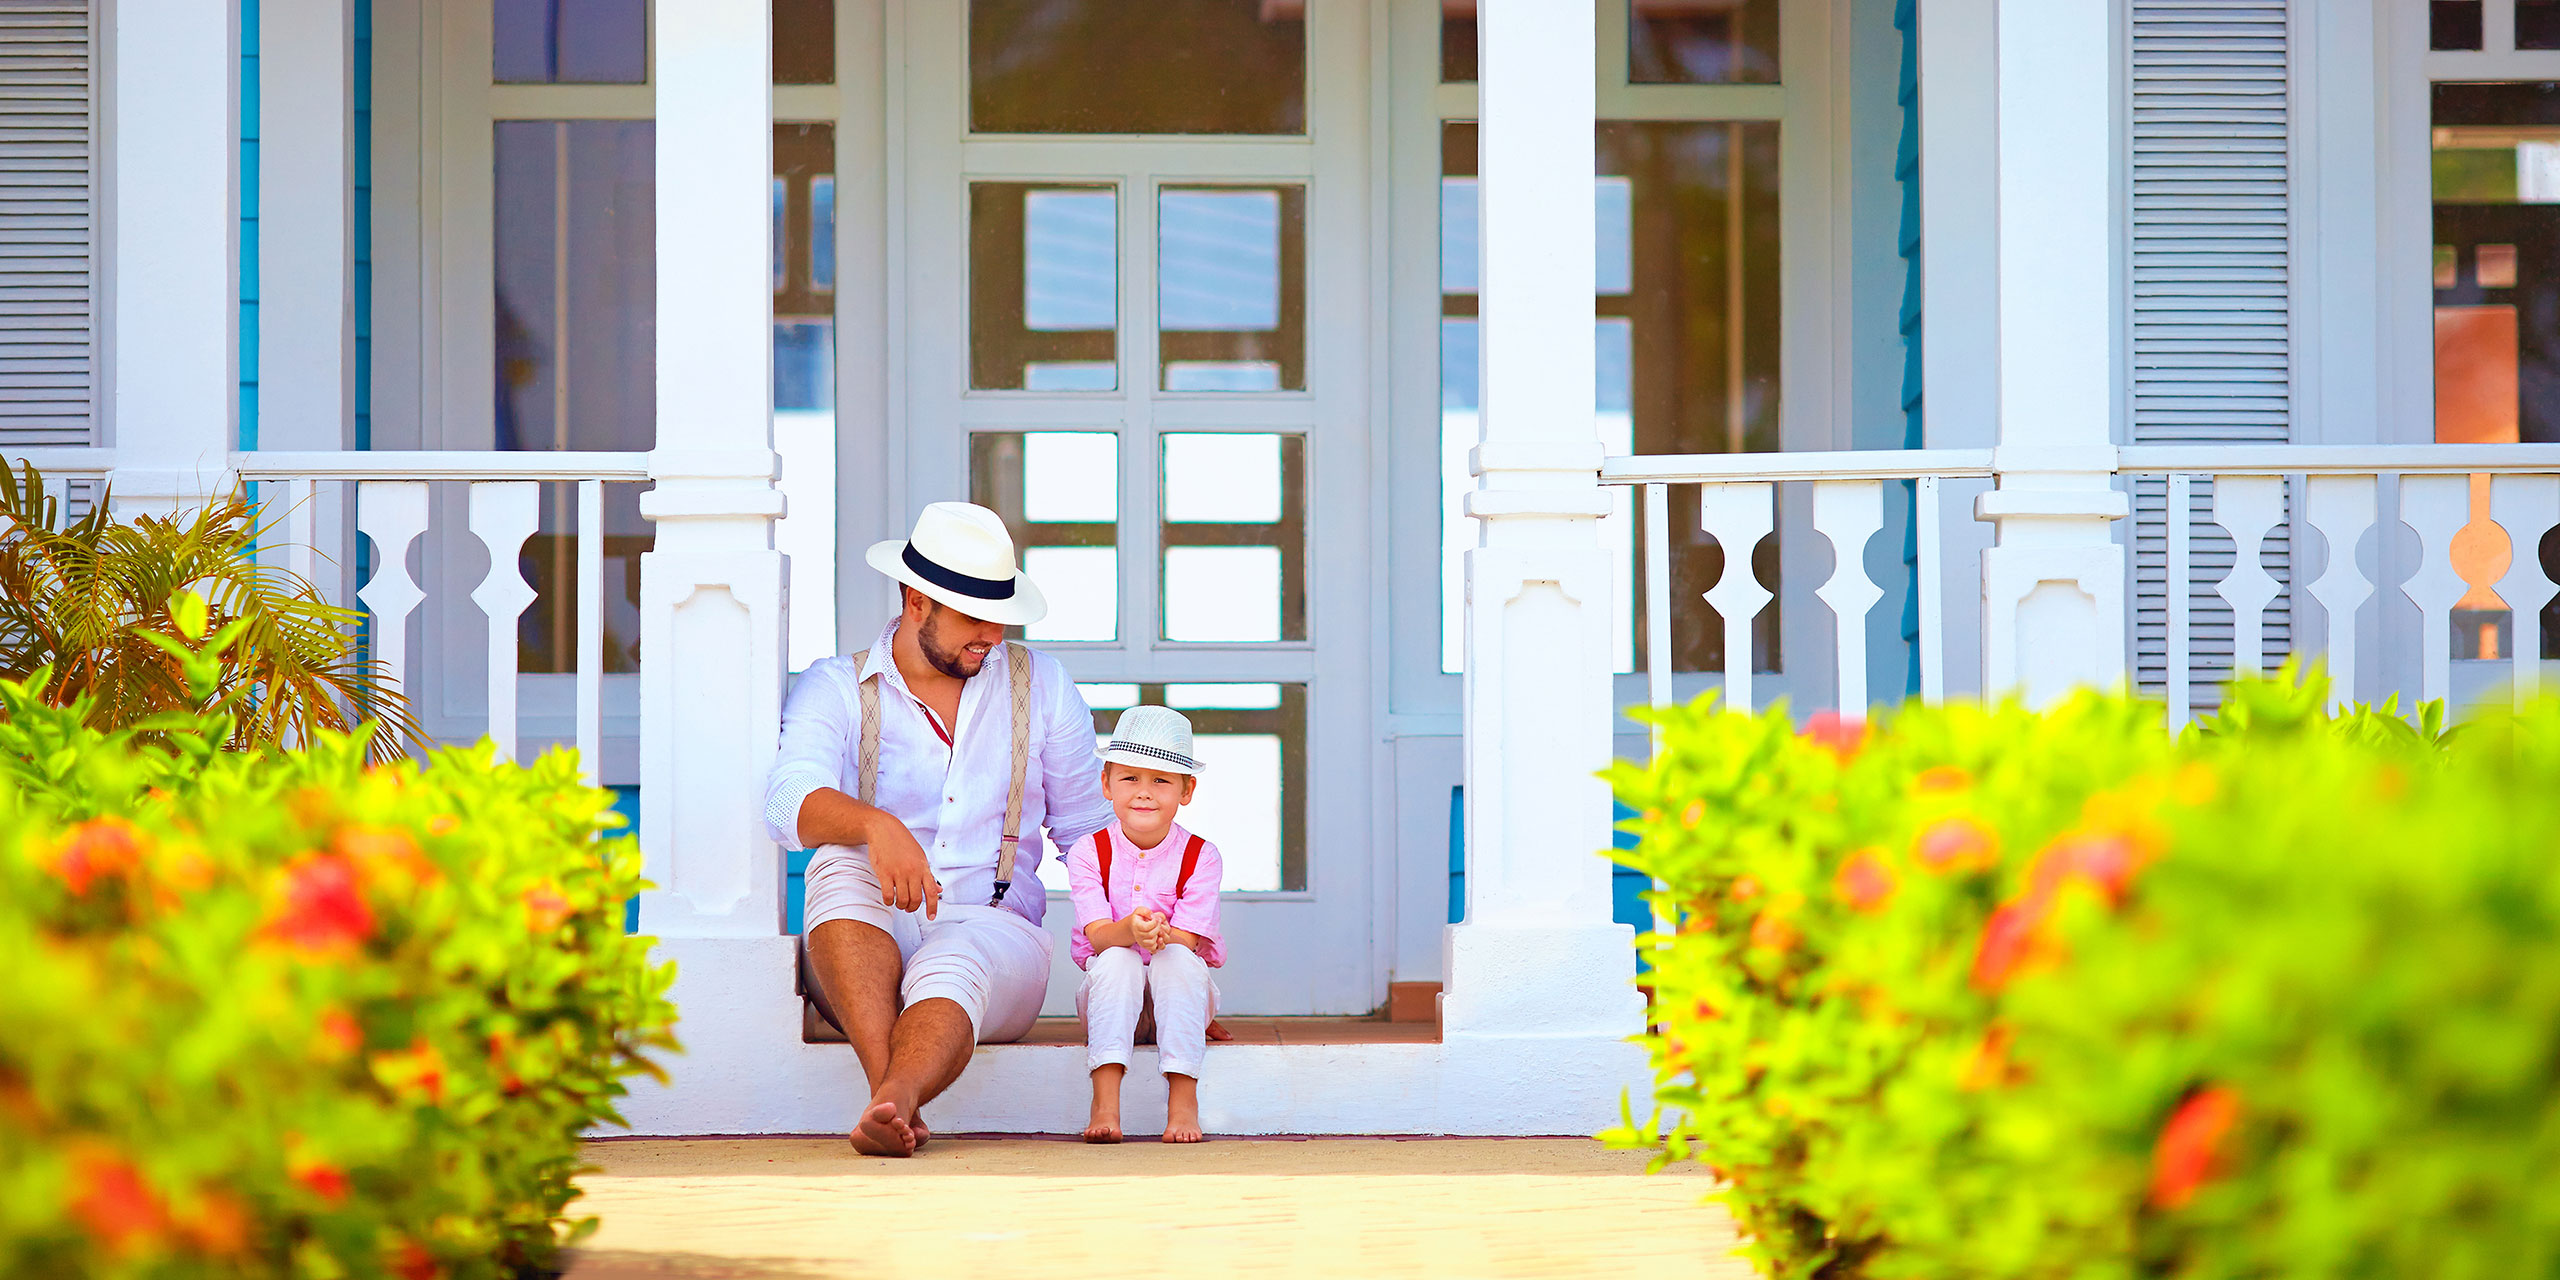 Father and Son in the Caribbean; Courtesy of Olesia Bilkei/Shutterstock.com